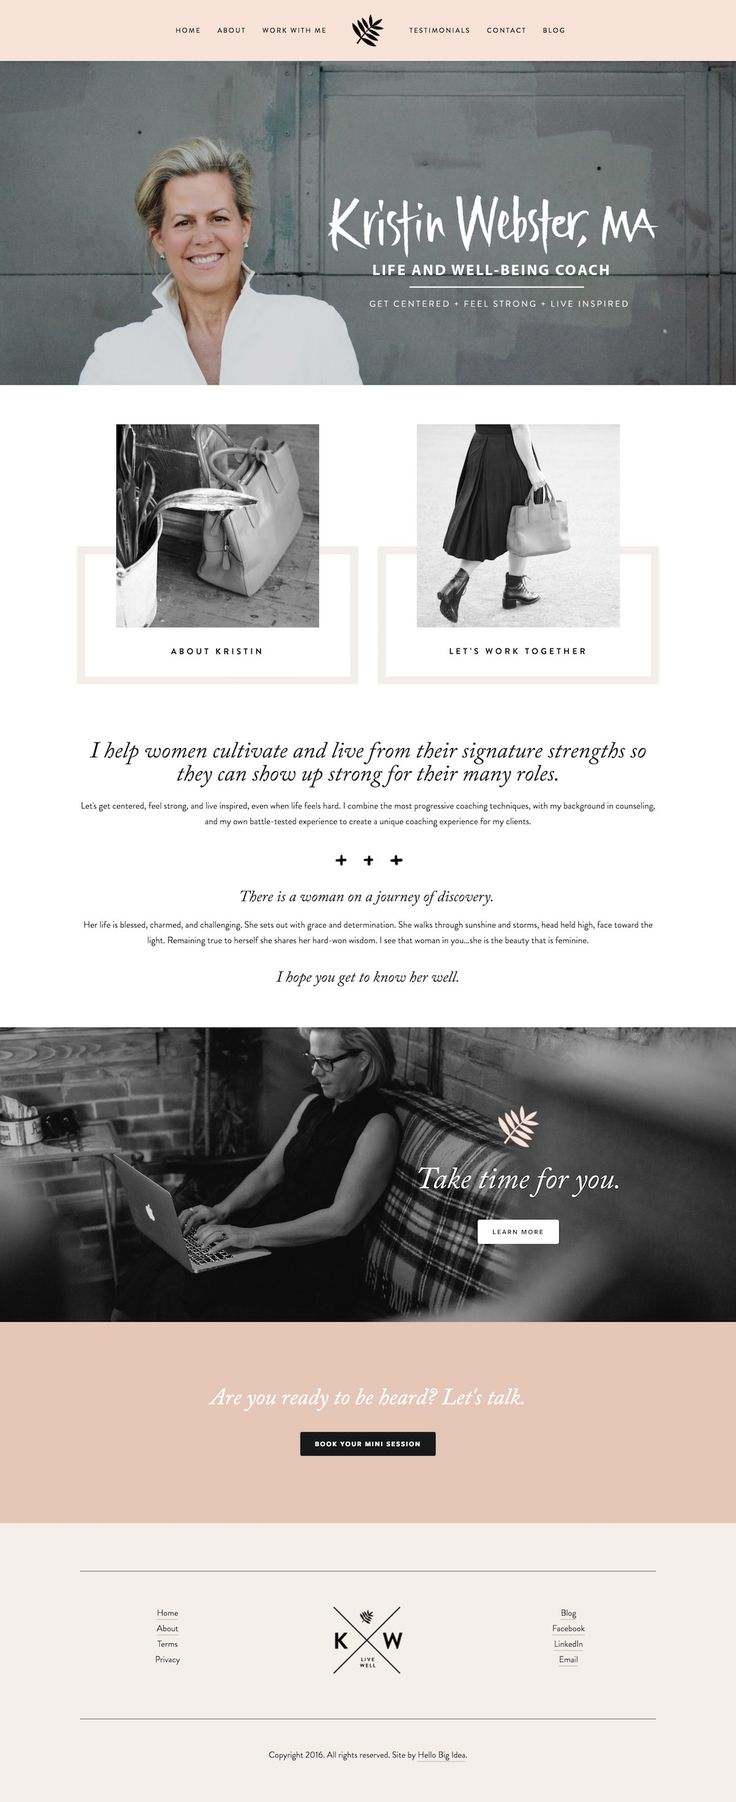 Kristin Webster Life Coach • A top 10 Squarespace feminine websites for inspiration.jpg